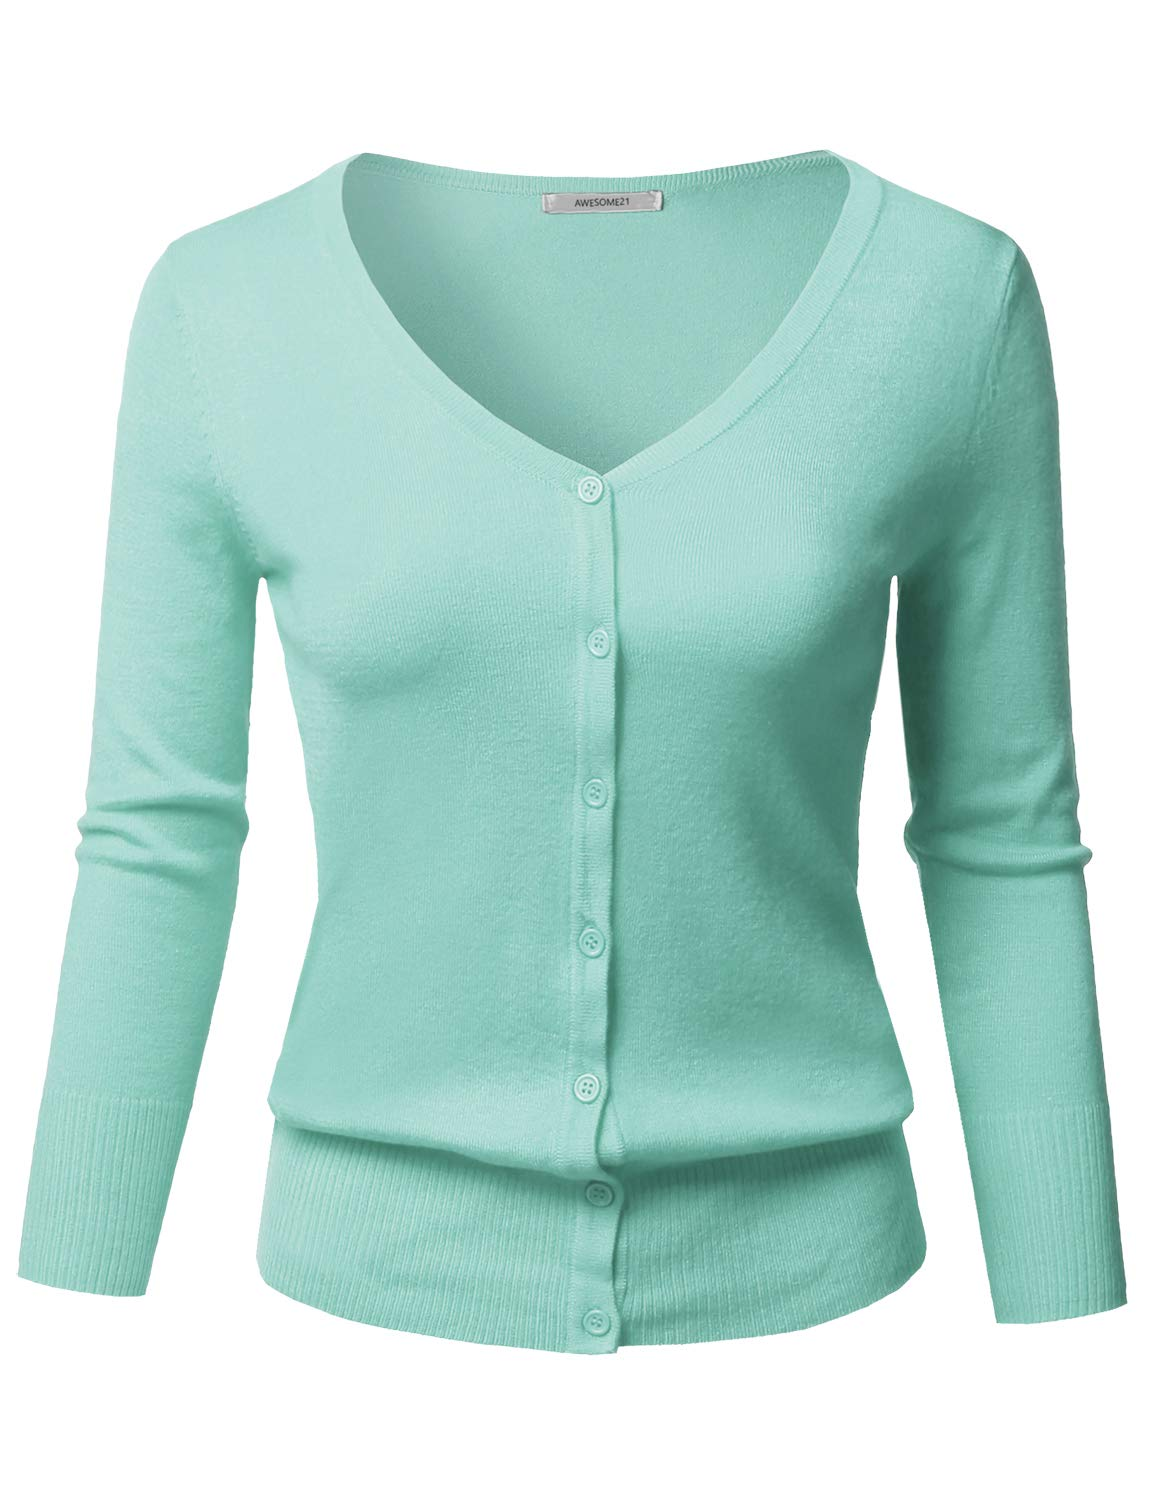 Solid Button Down V-Neck 3/4 Sleeves Knit Cardigan Ice Blue L